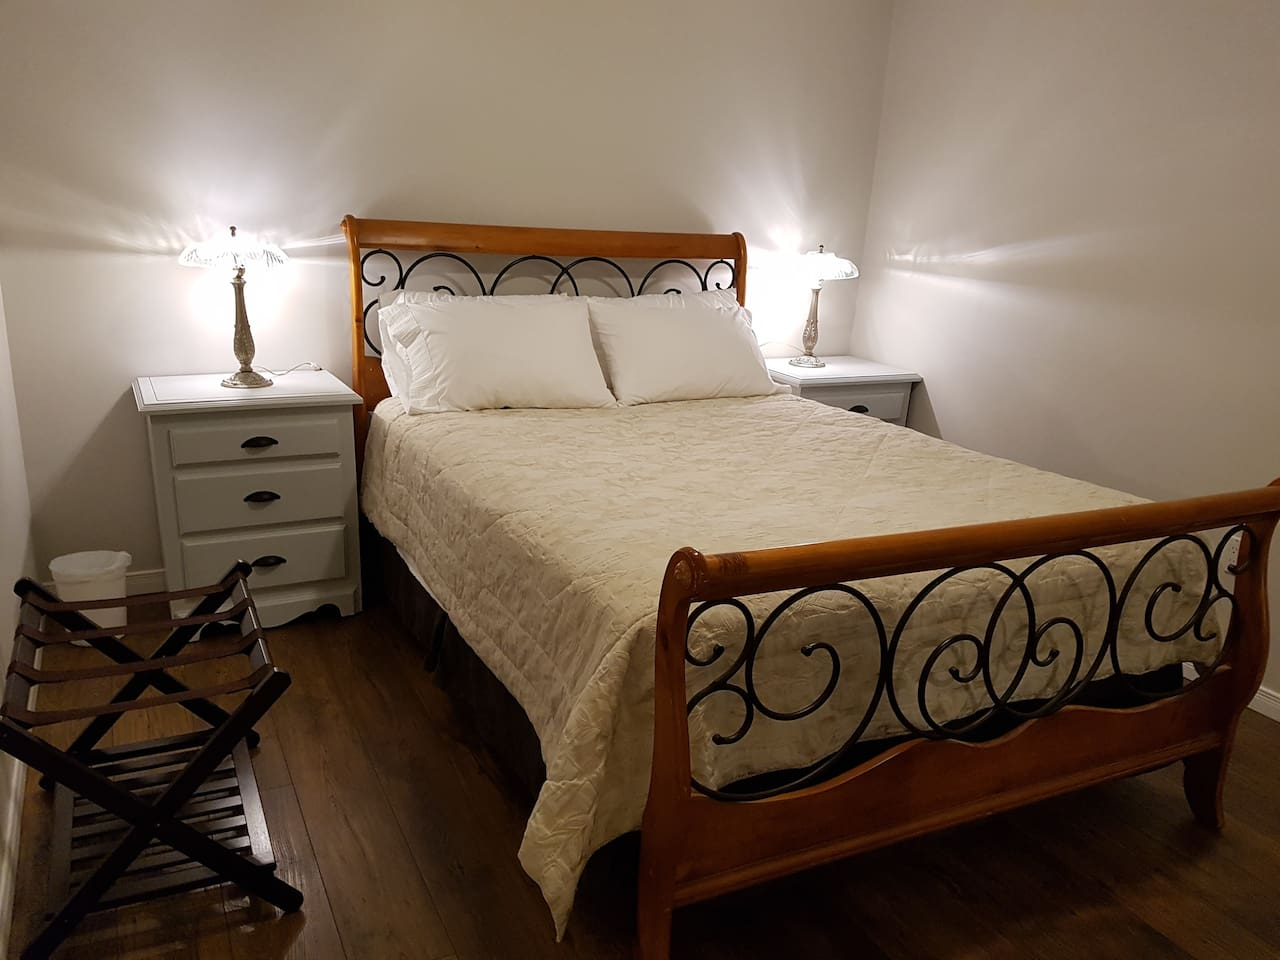 Queen Bed Fresh Bamboo Sheets